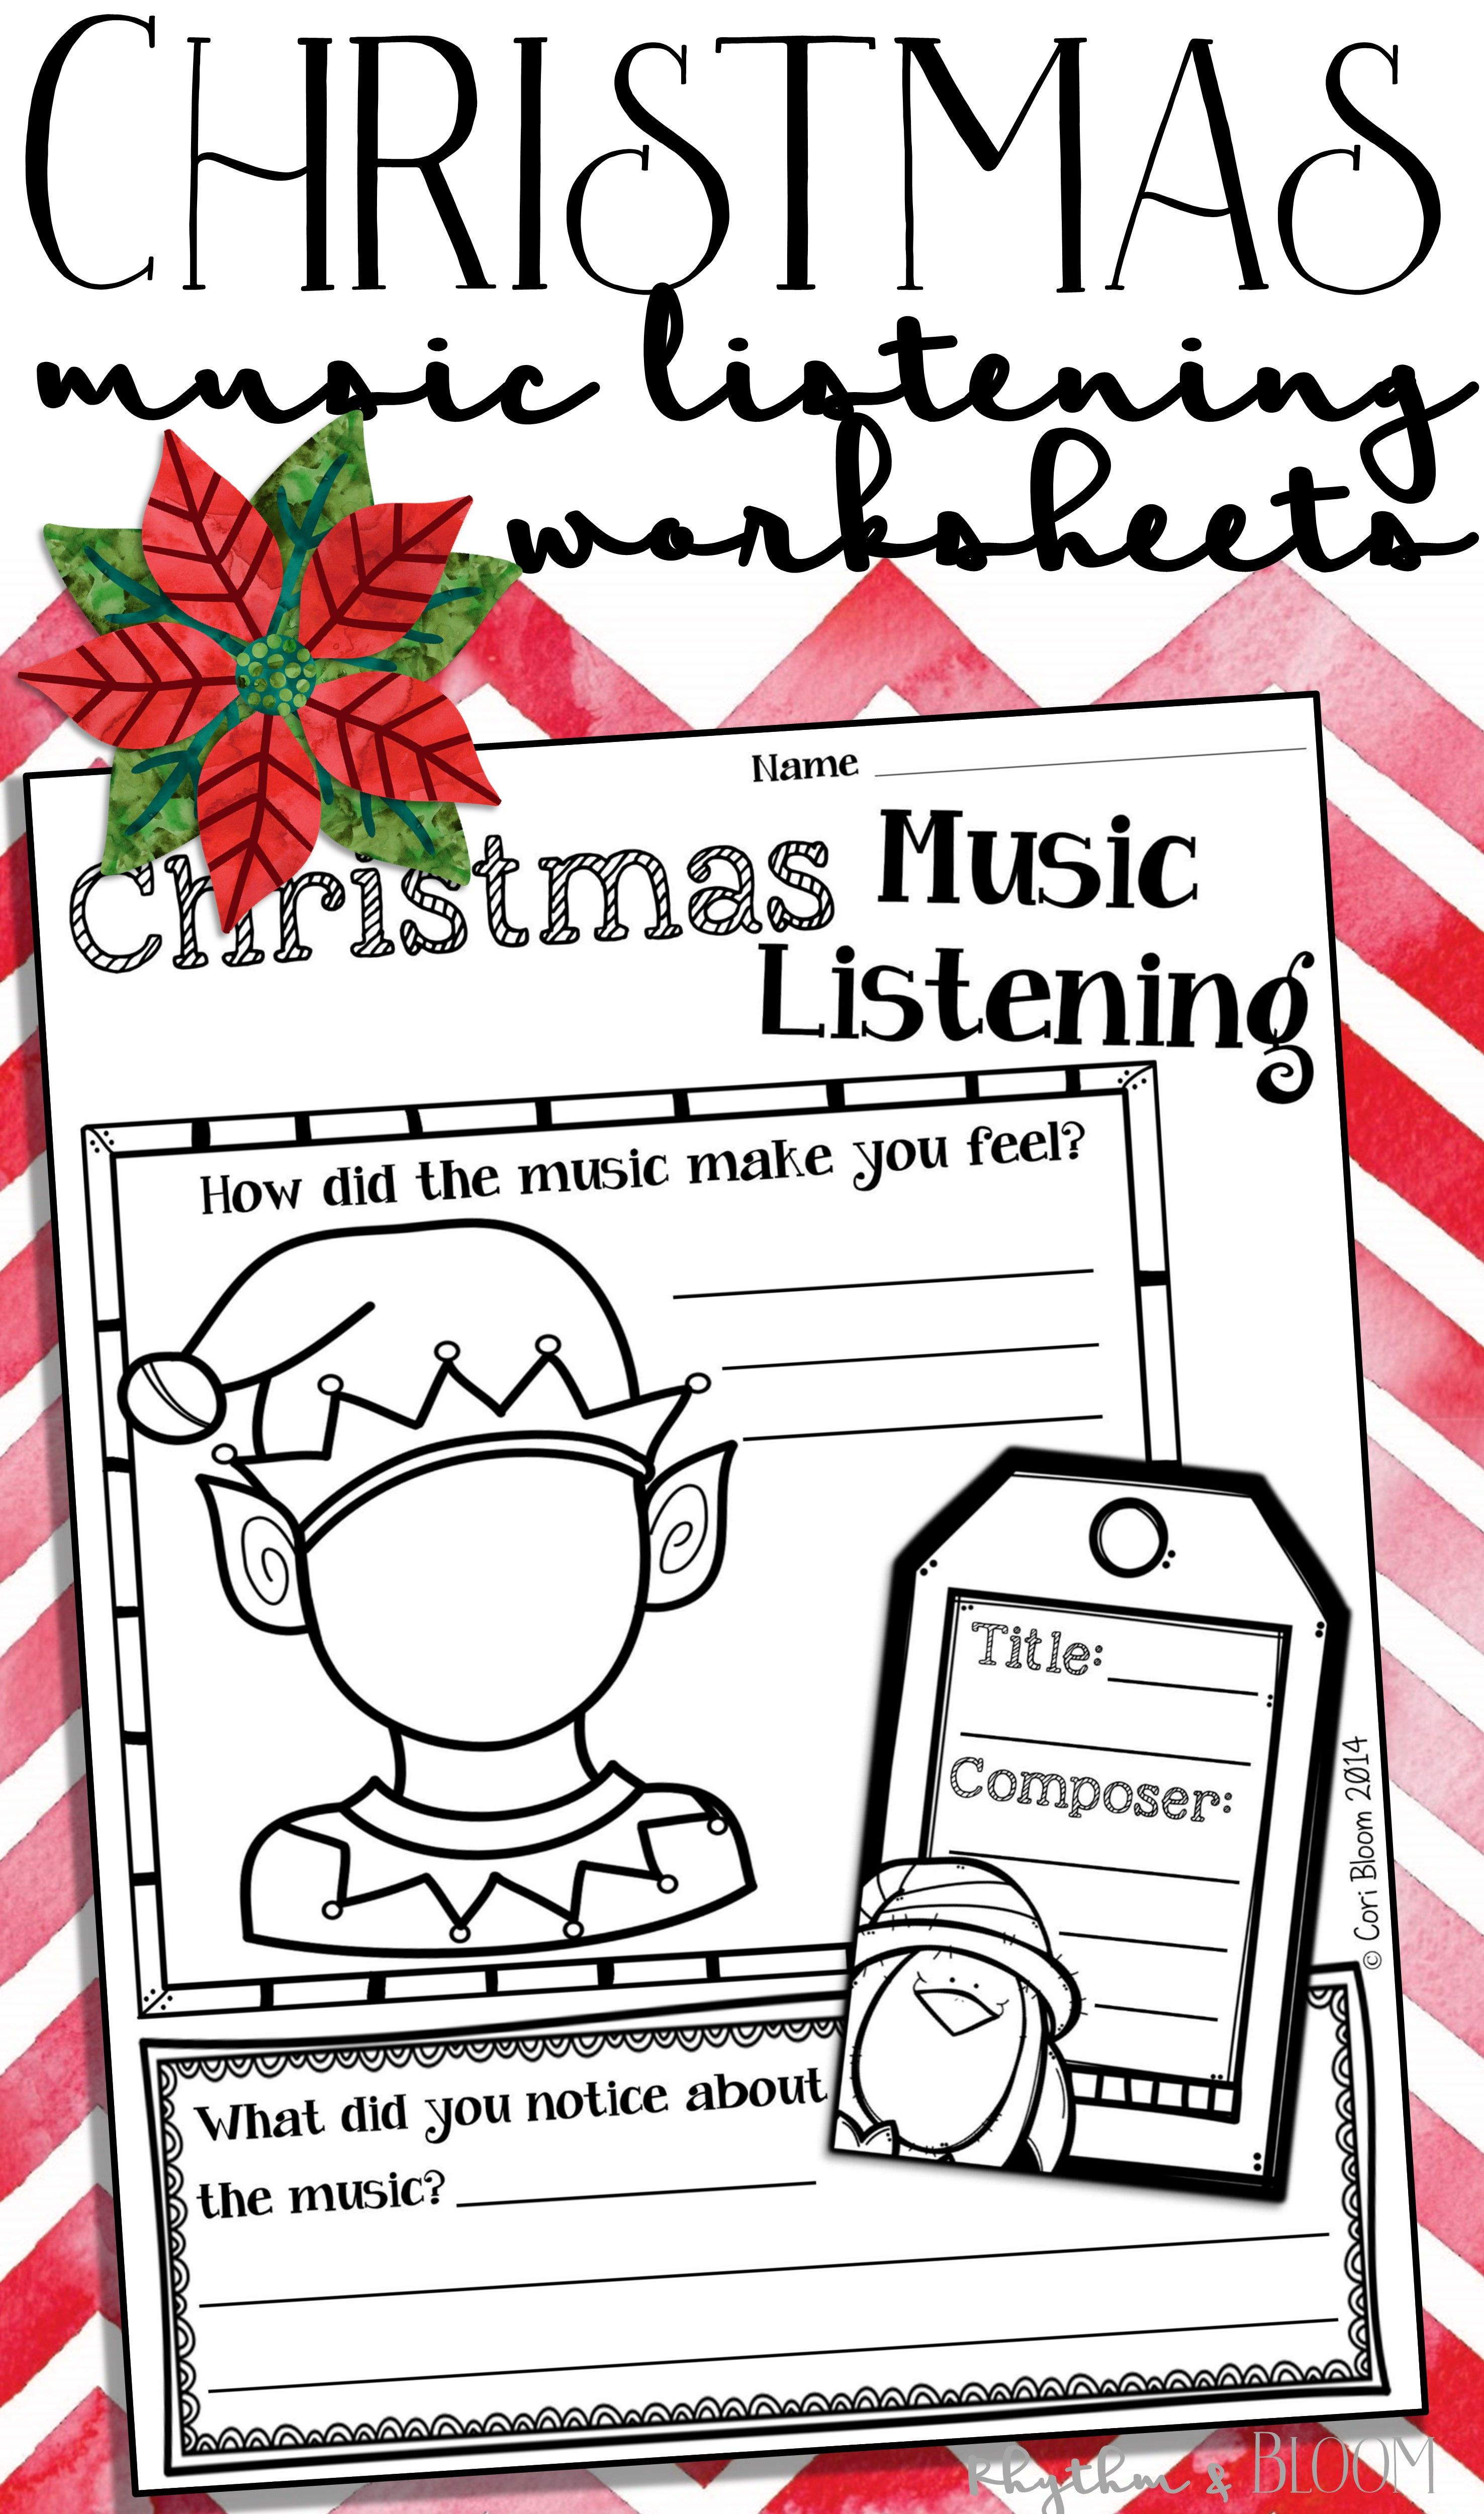 FREE Christmas & Winter Holiday Music Listening Worksheets: Easy ...